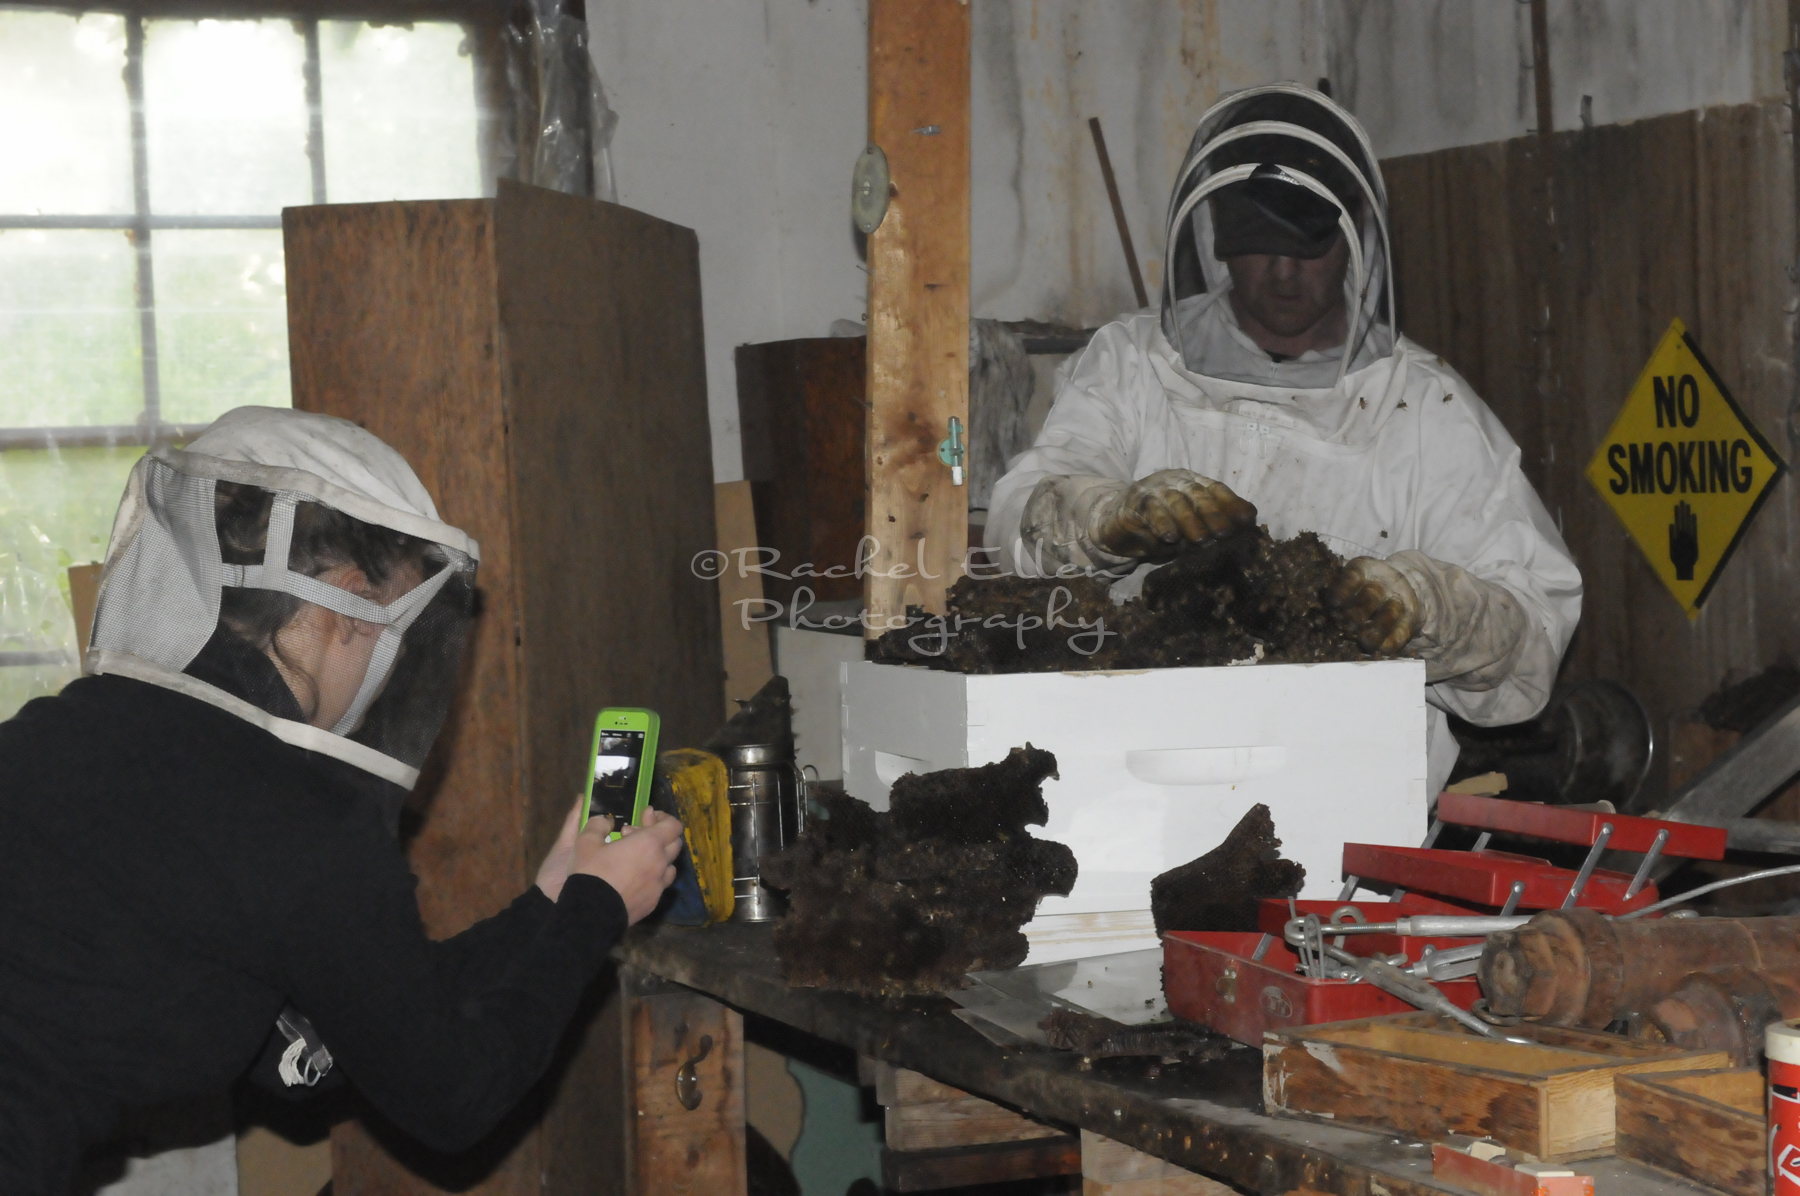 removing honeybees from an abandoned schoolhouse